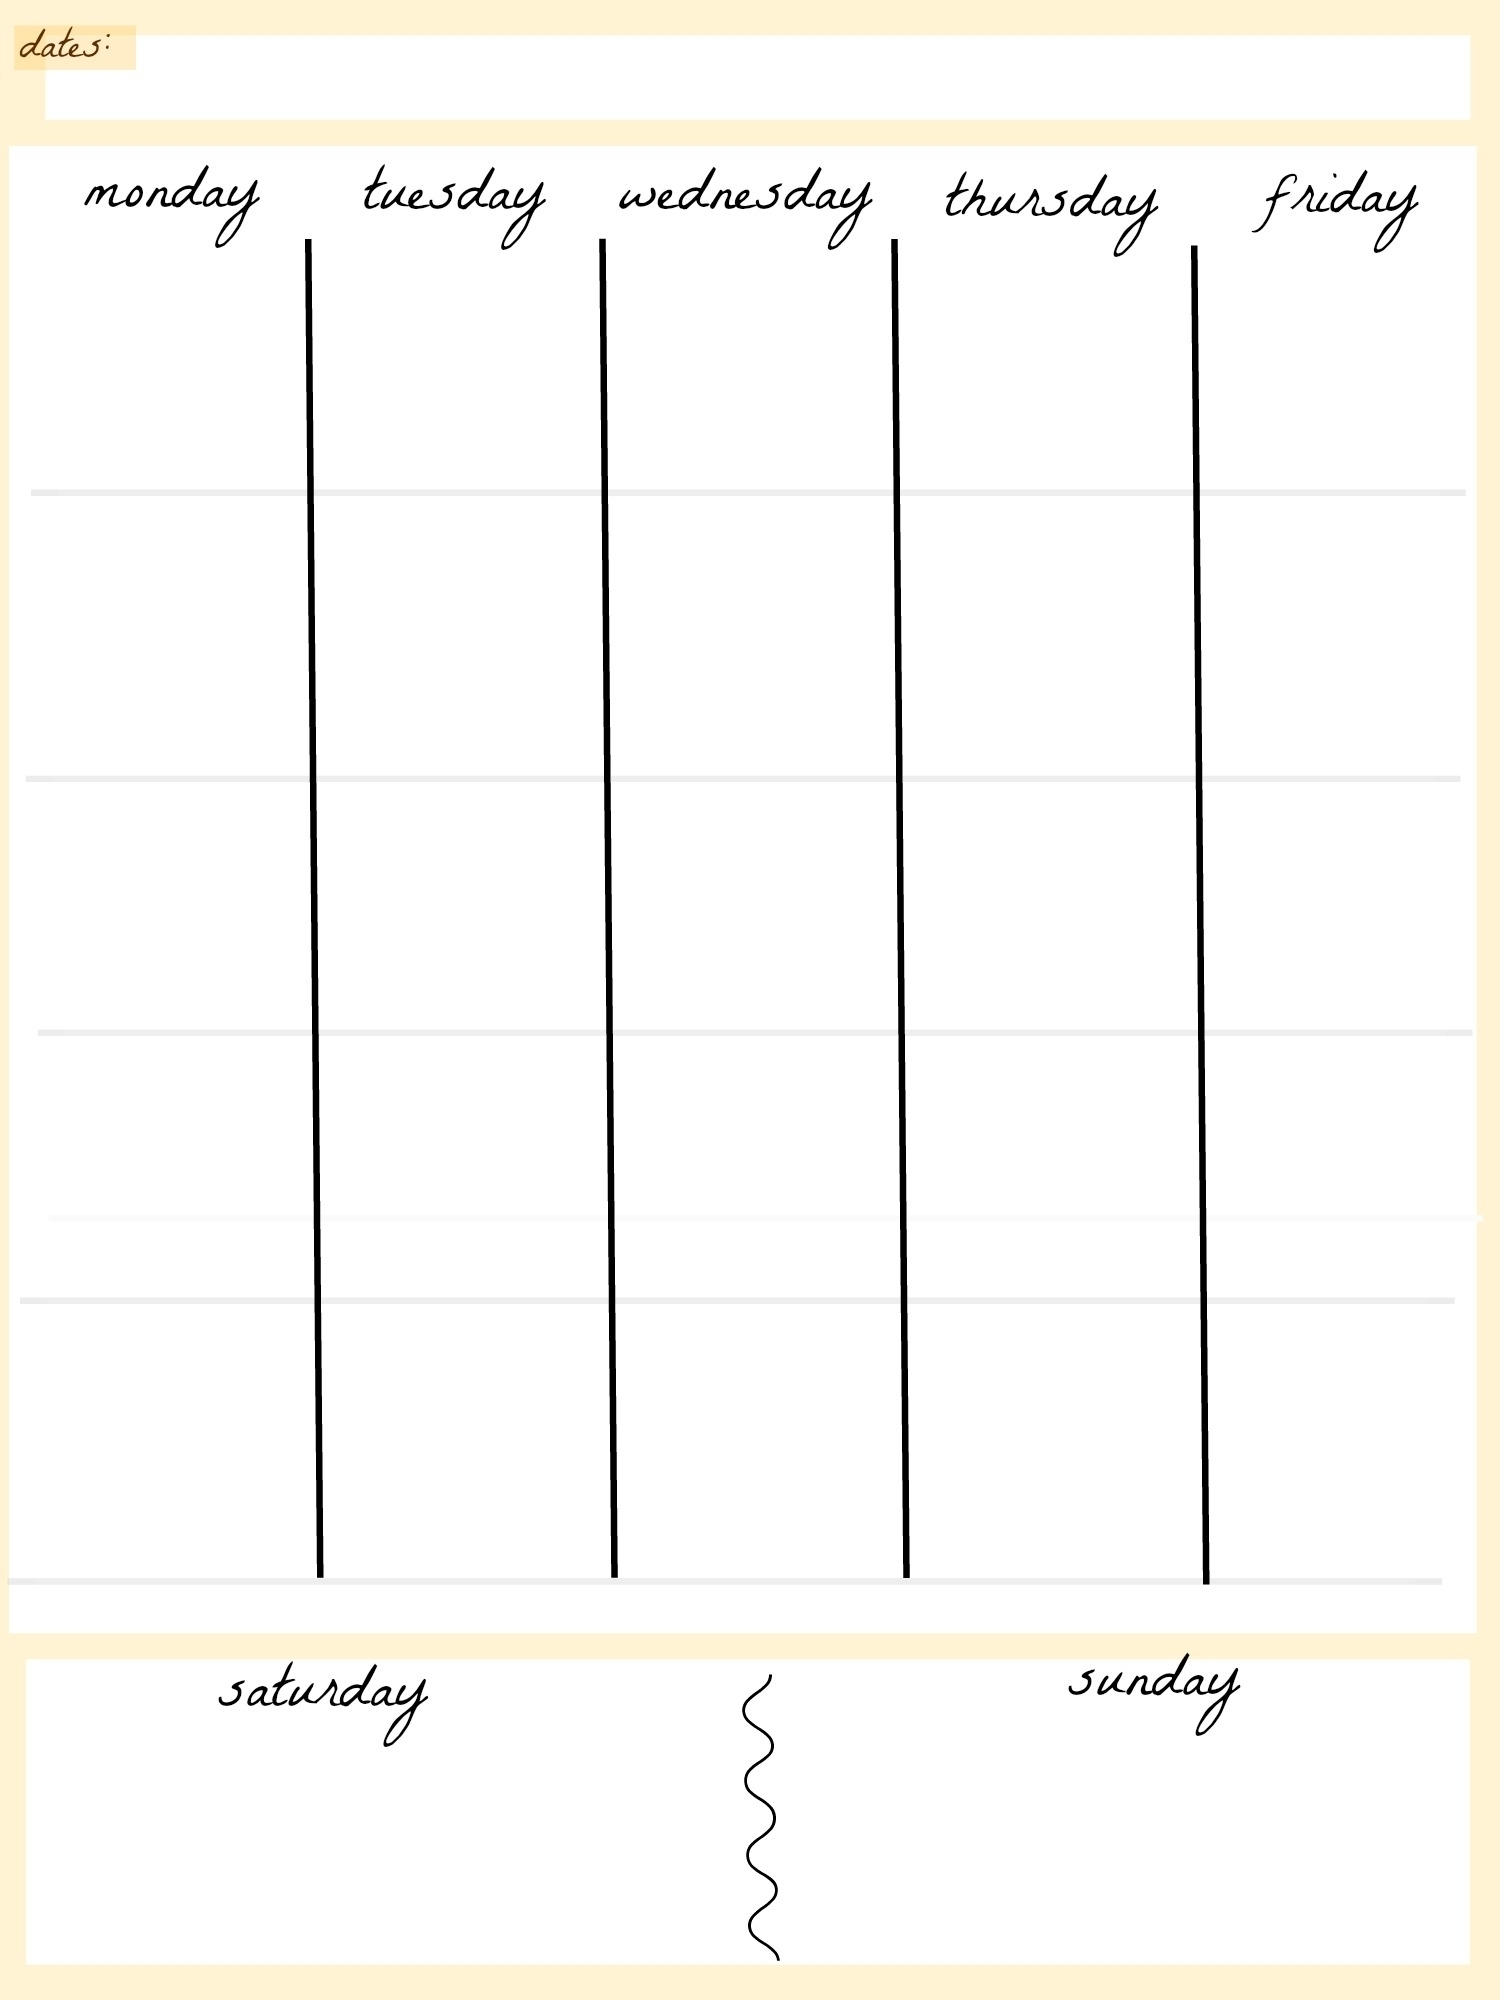 Images Of Days Of The Week Calendar For One Month | Template with Days Of The Week Printable Calendar